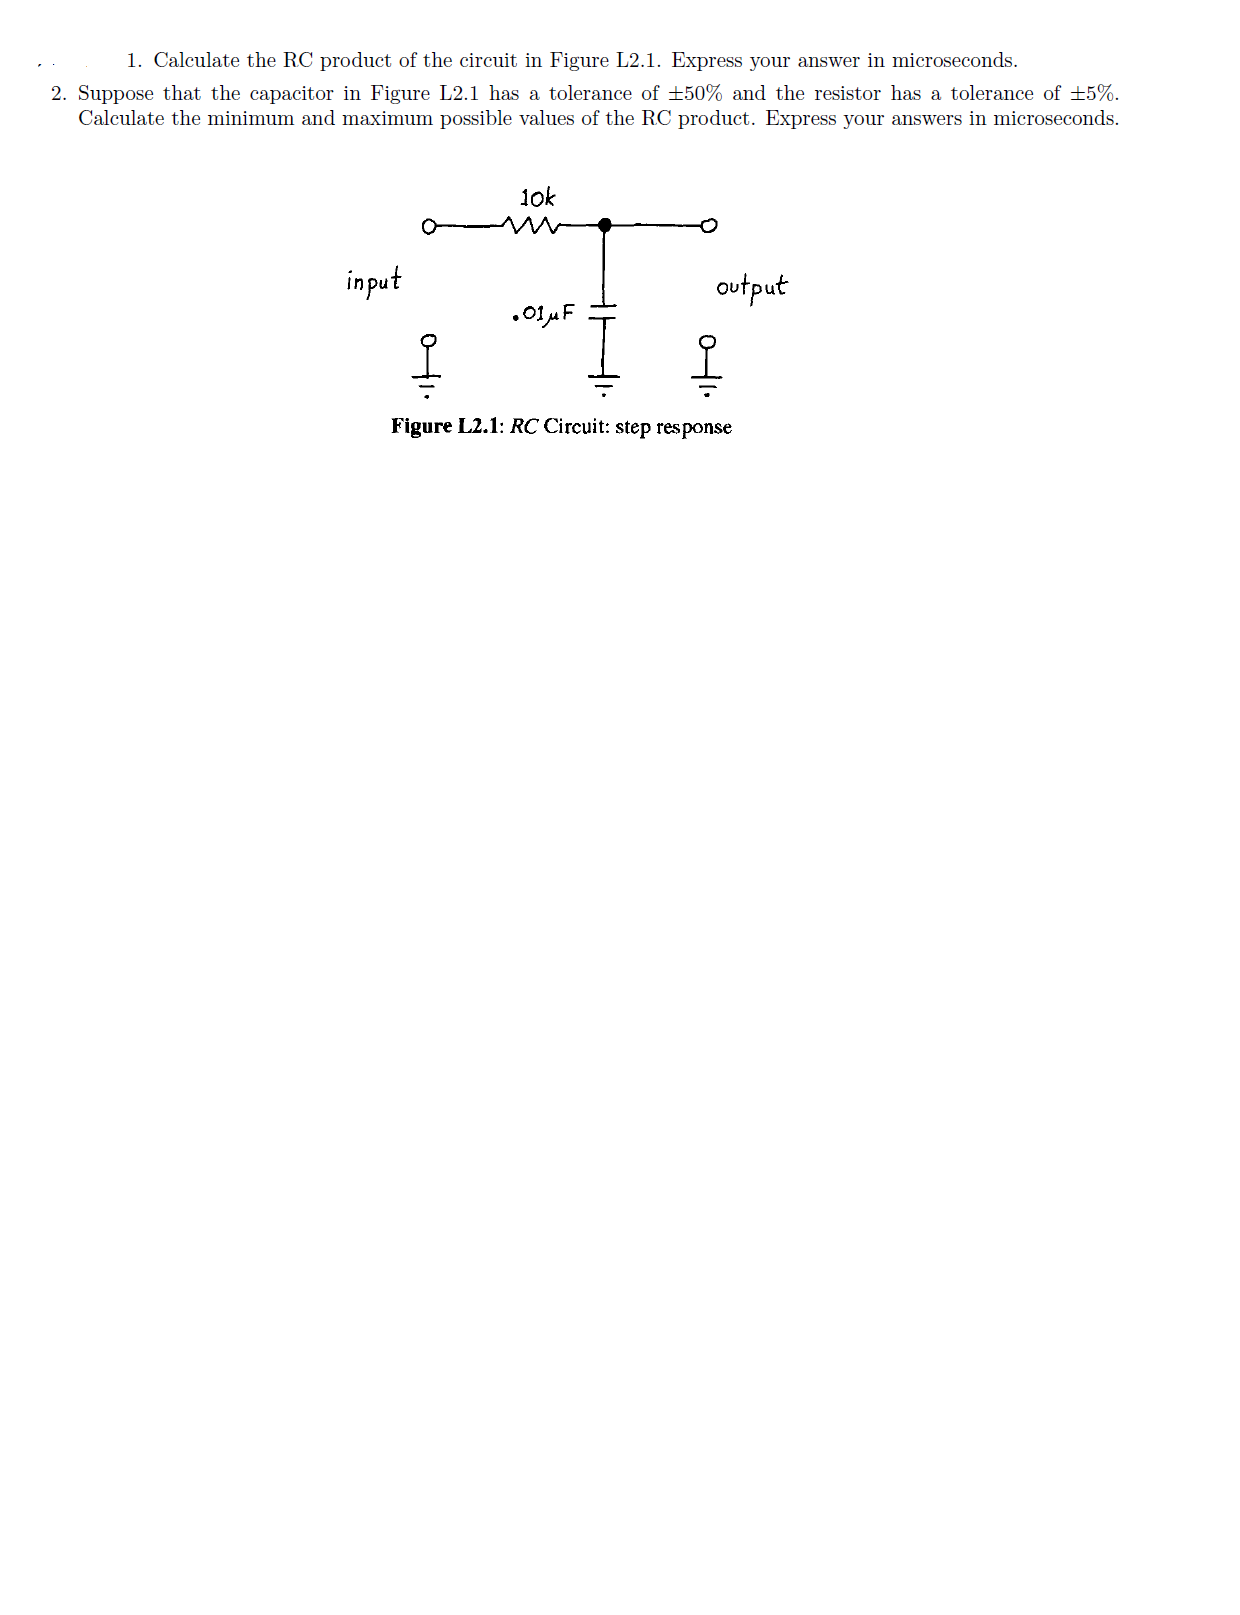 Calculate the RC product of the circuit in Figure